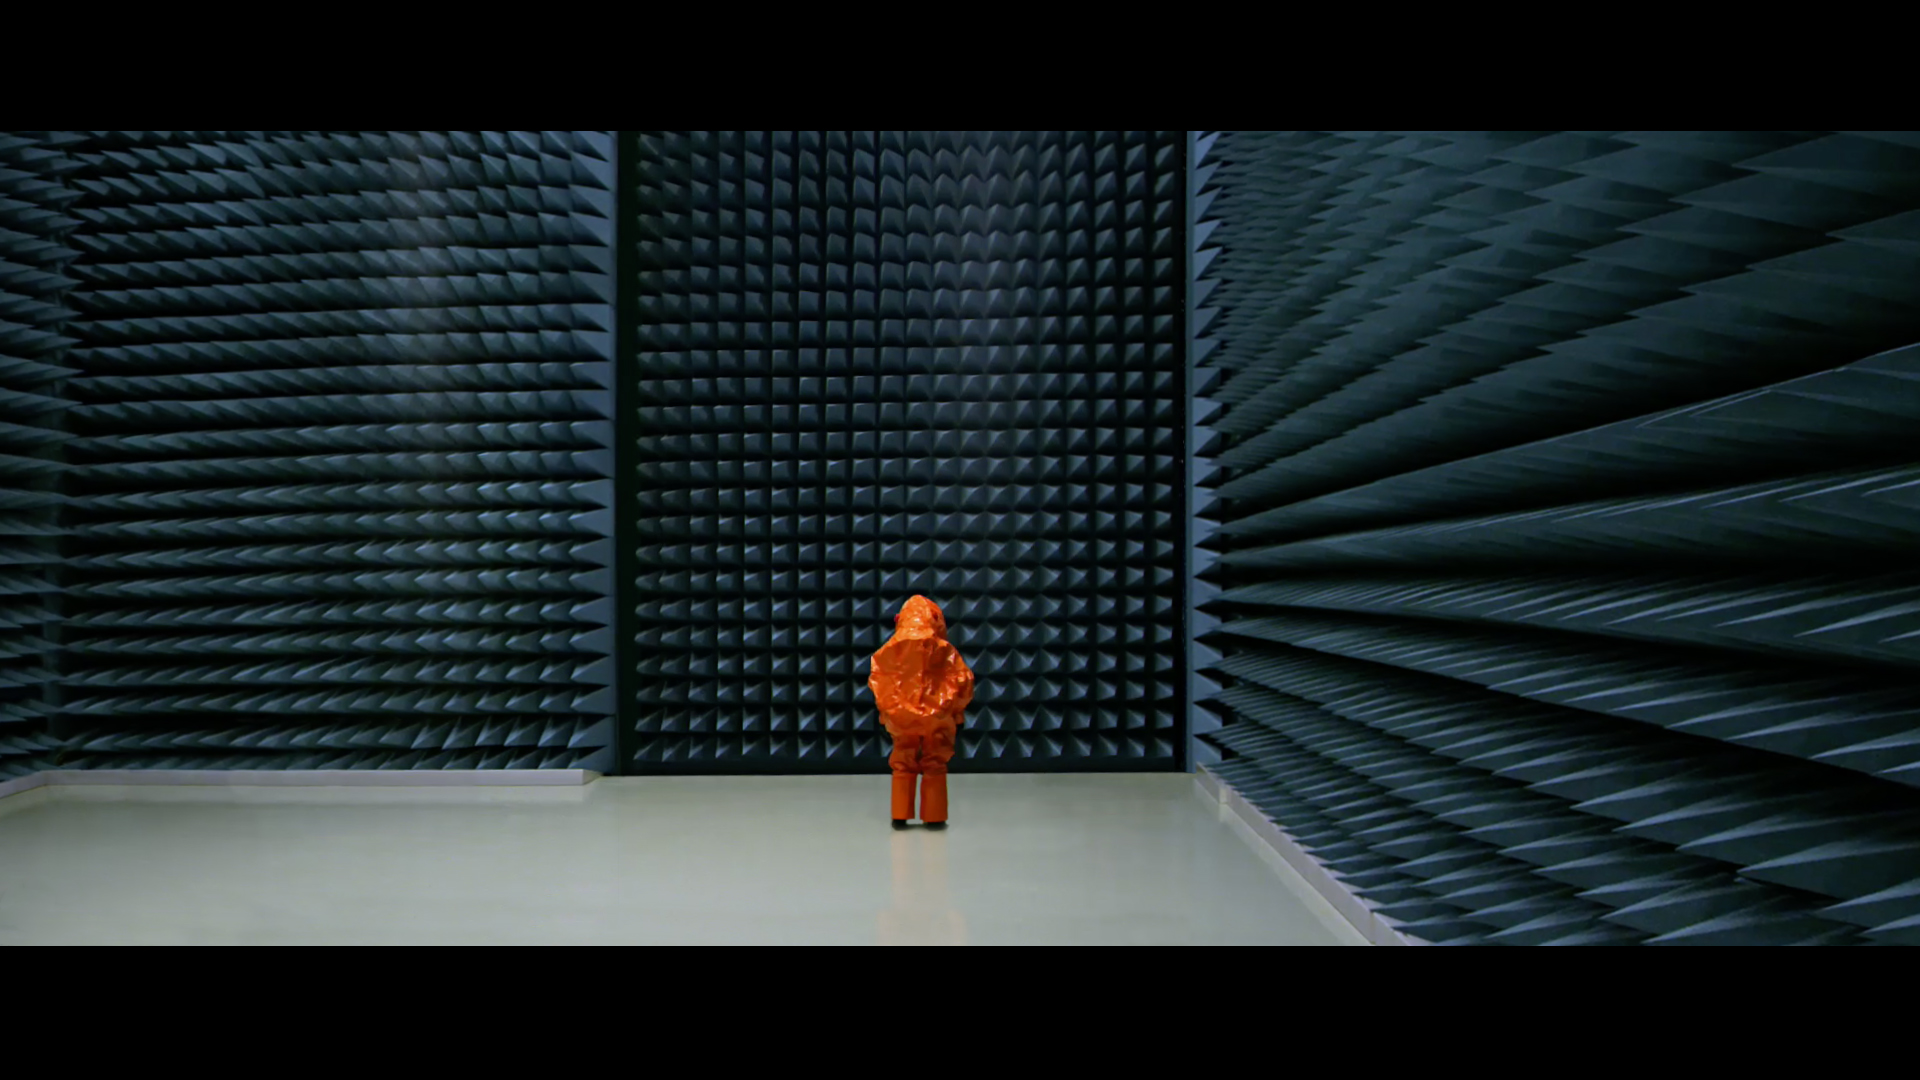 THE VISIT_Main still_ Orange_man_in_blue_room_(C)Heikki_Faerm